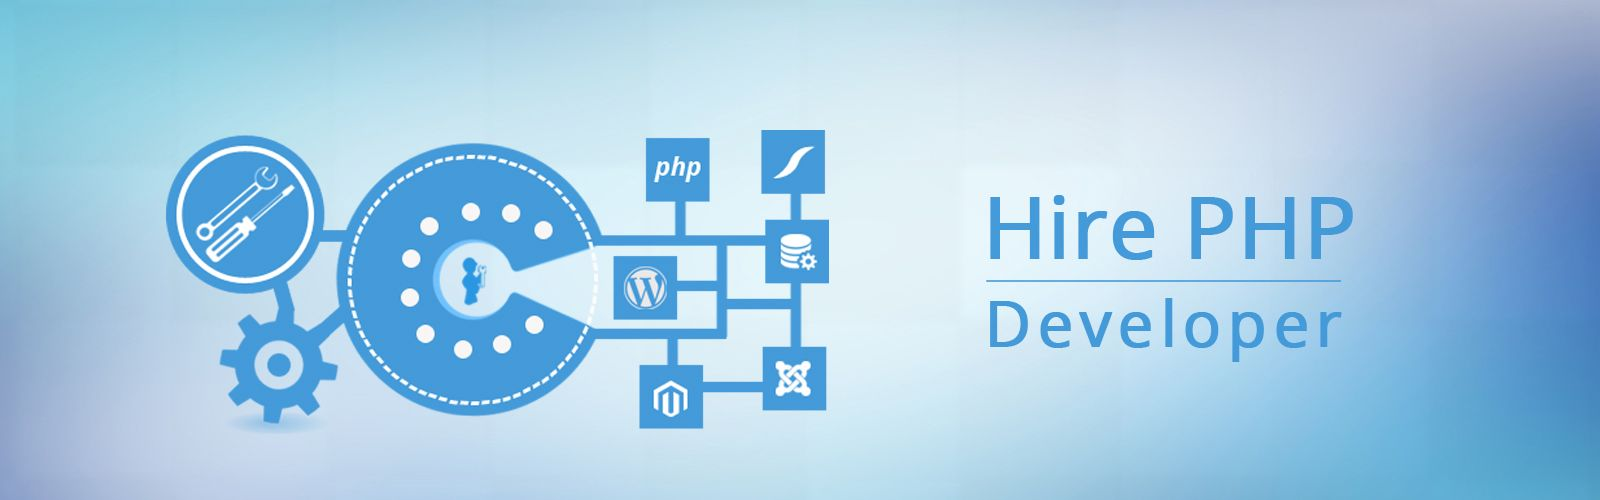 Hire Php Developers Top Php Companies Seo Services Company Web Development Company Web Development